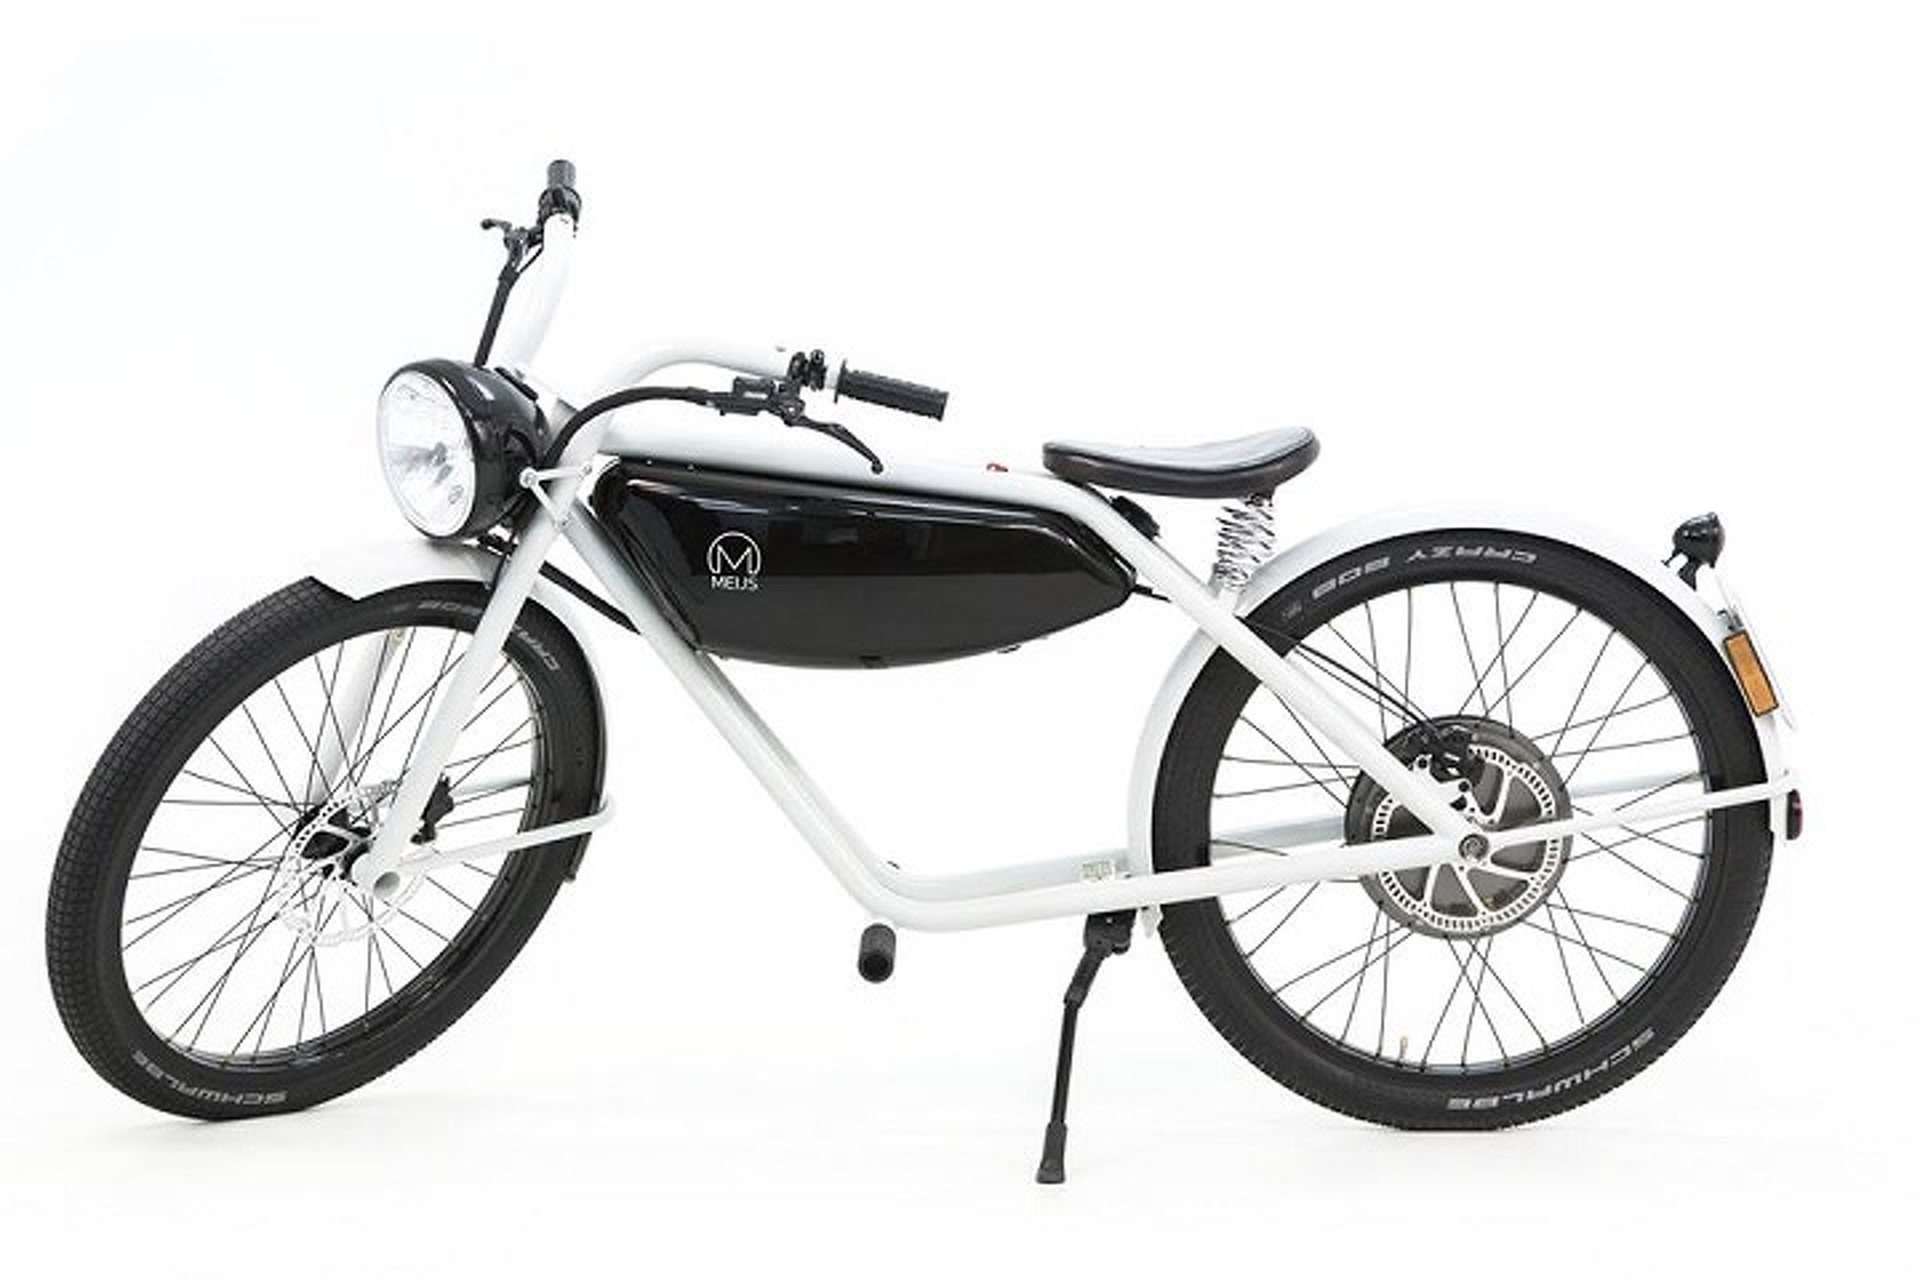 The Meijs Motorman is One Beautiful Electric Moped